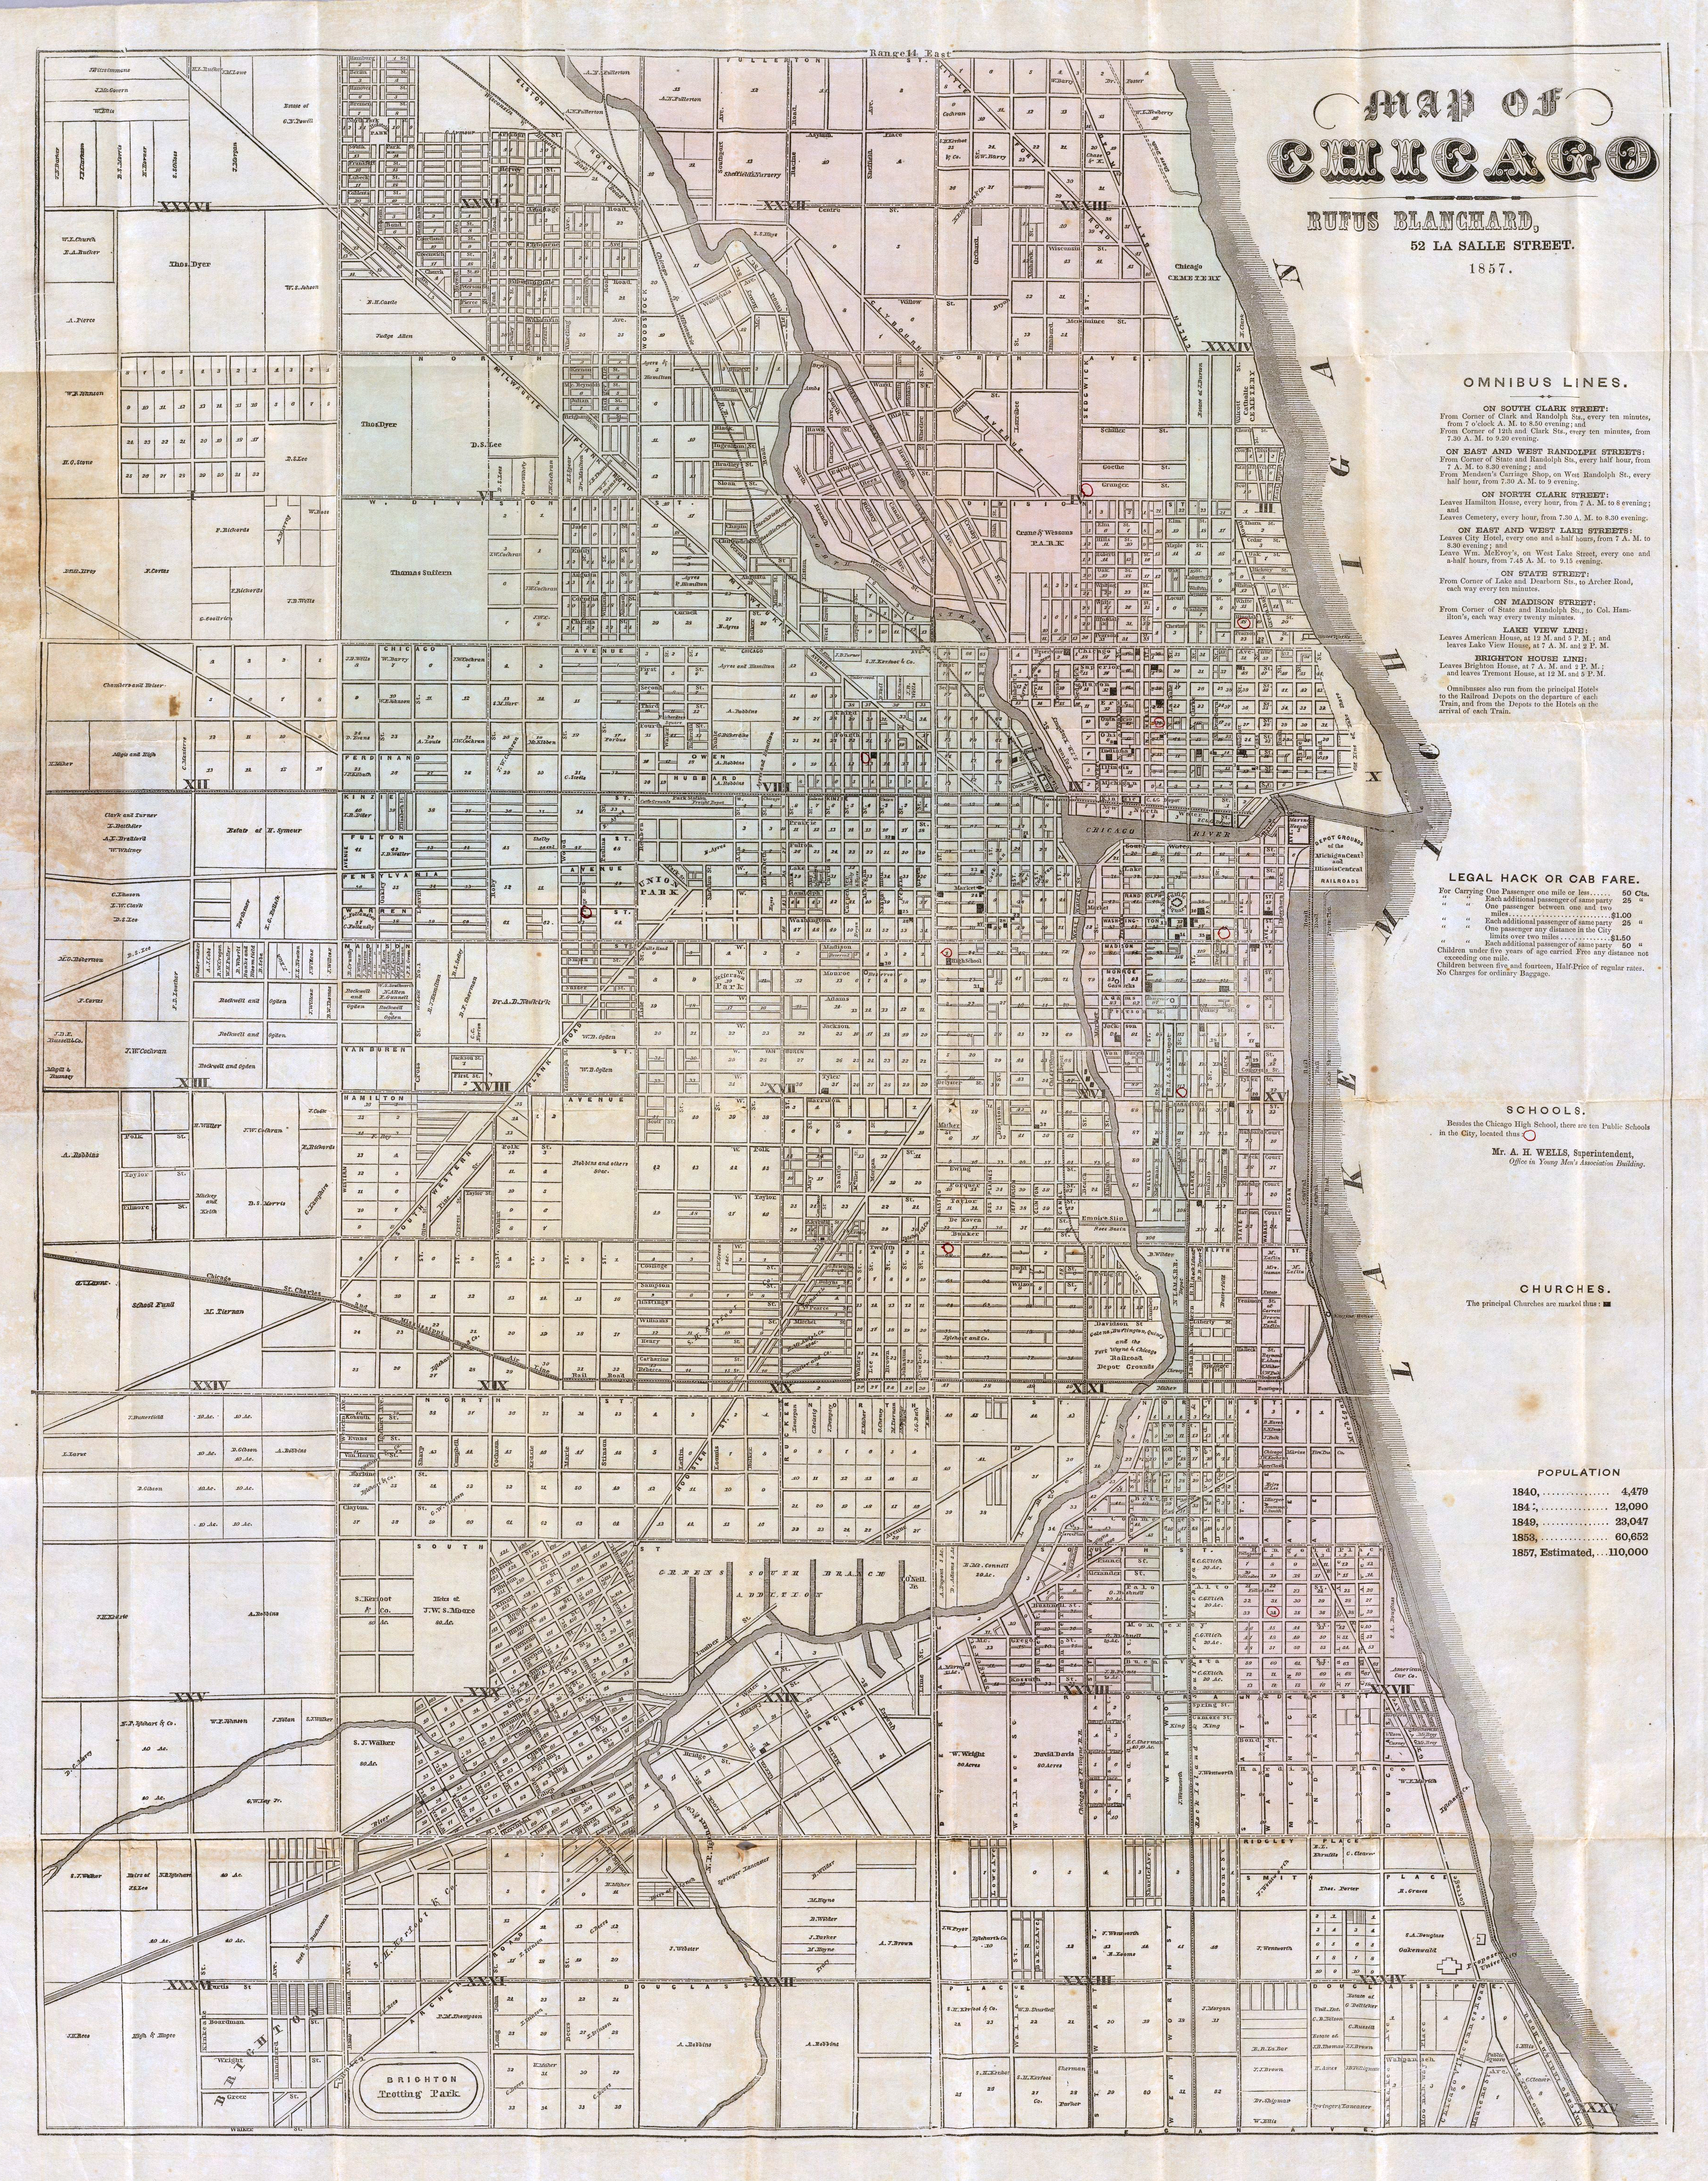 Chicago Map Streets.Chicago Street Names Street Signs